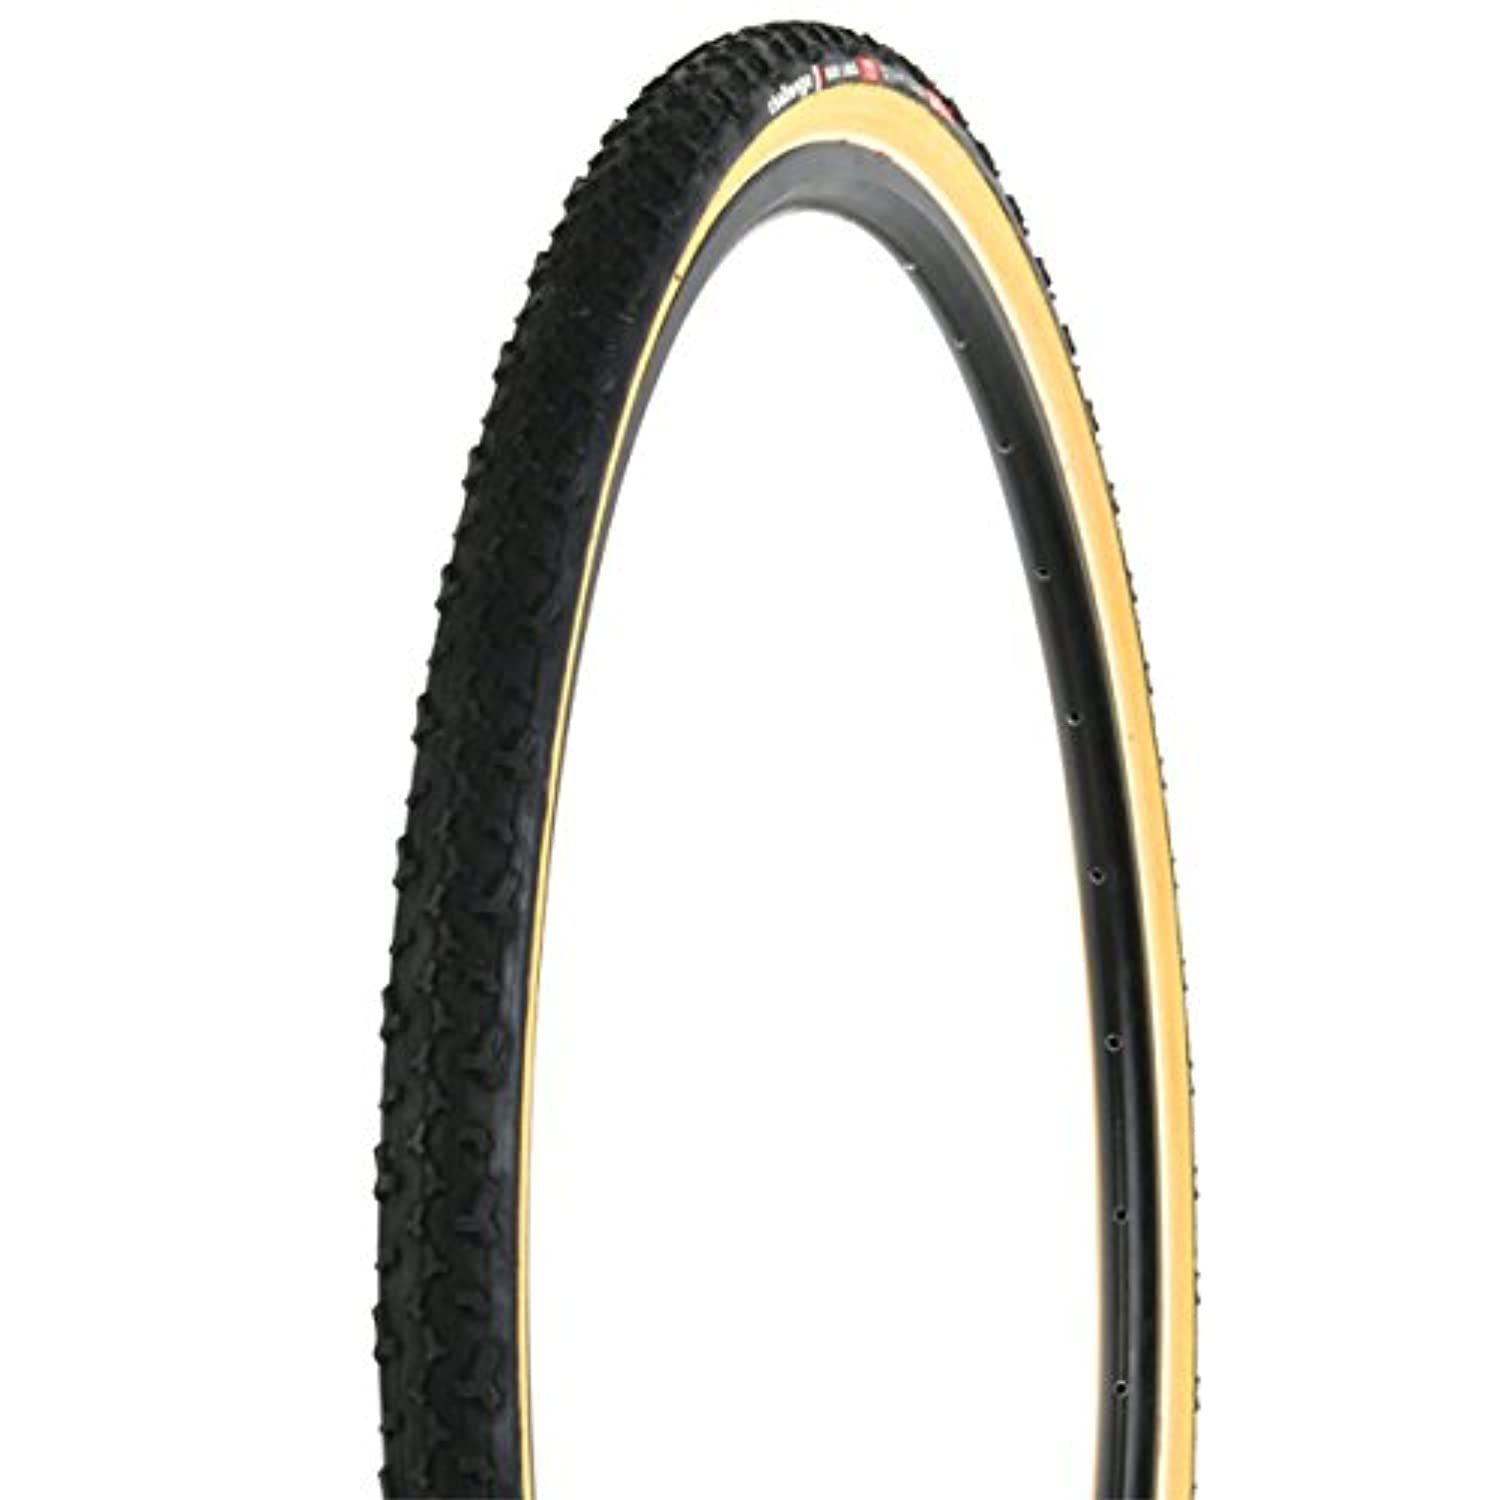 Challenge Baby Limus 700c Tubular Bicycle Tire (Black/Tan - 700 x 33) by Challenge